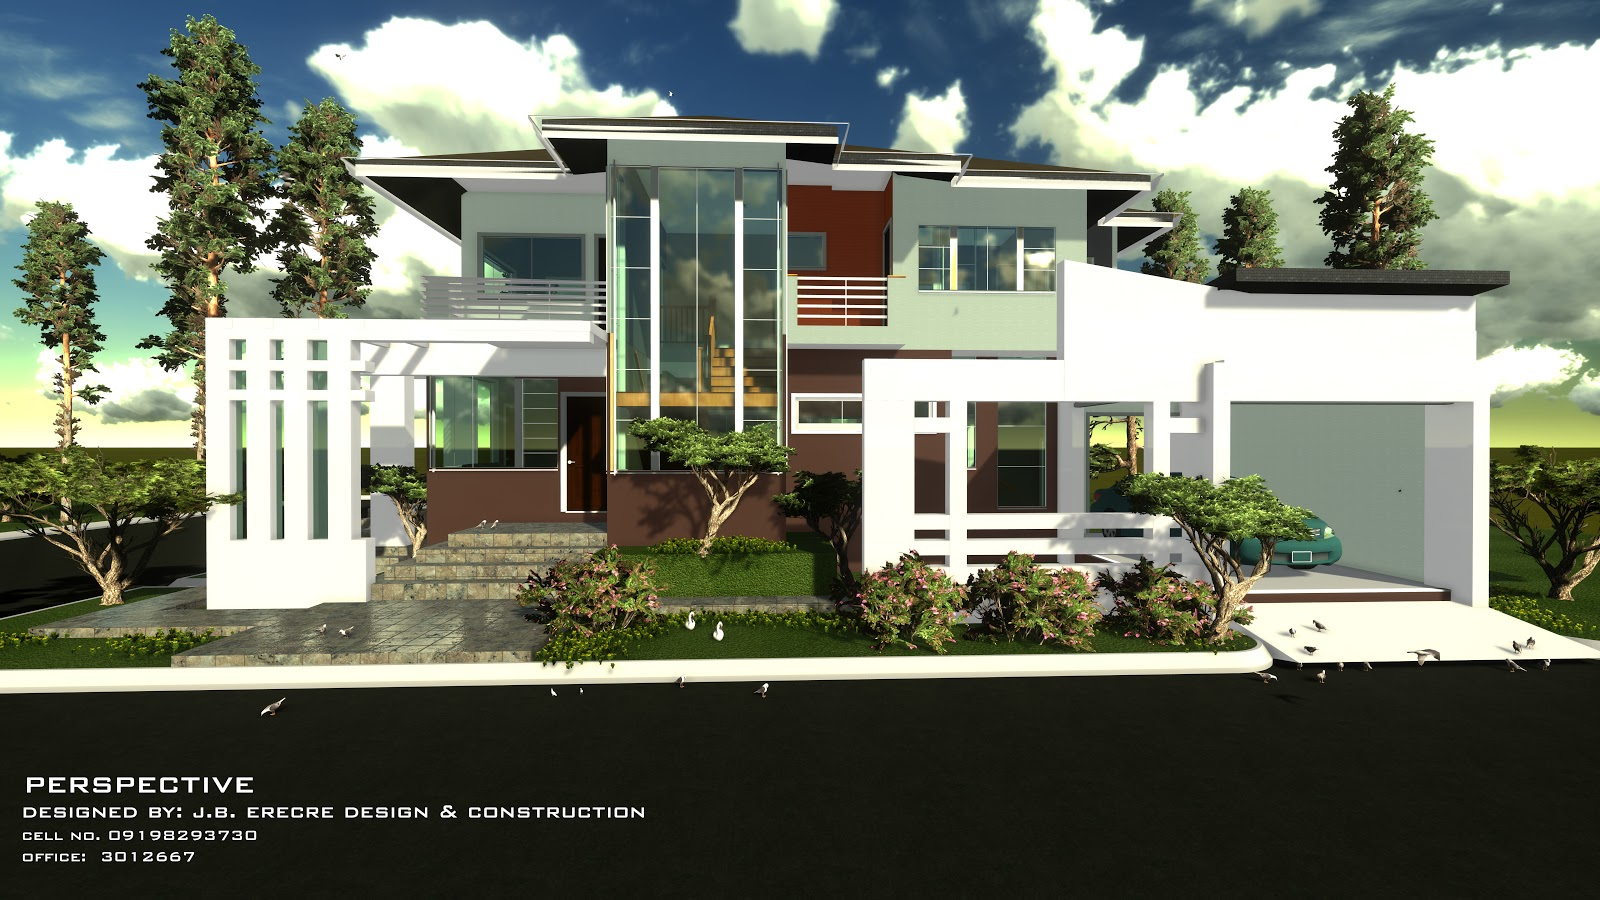 ... house+design+in+the+philippines+philippines+house+design+house+design